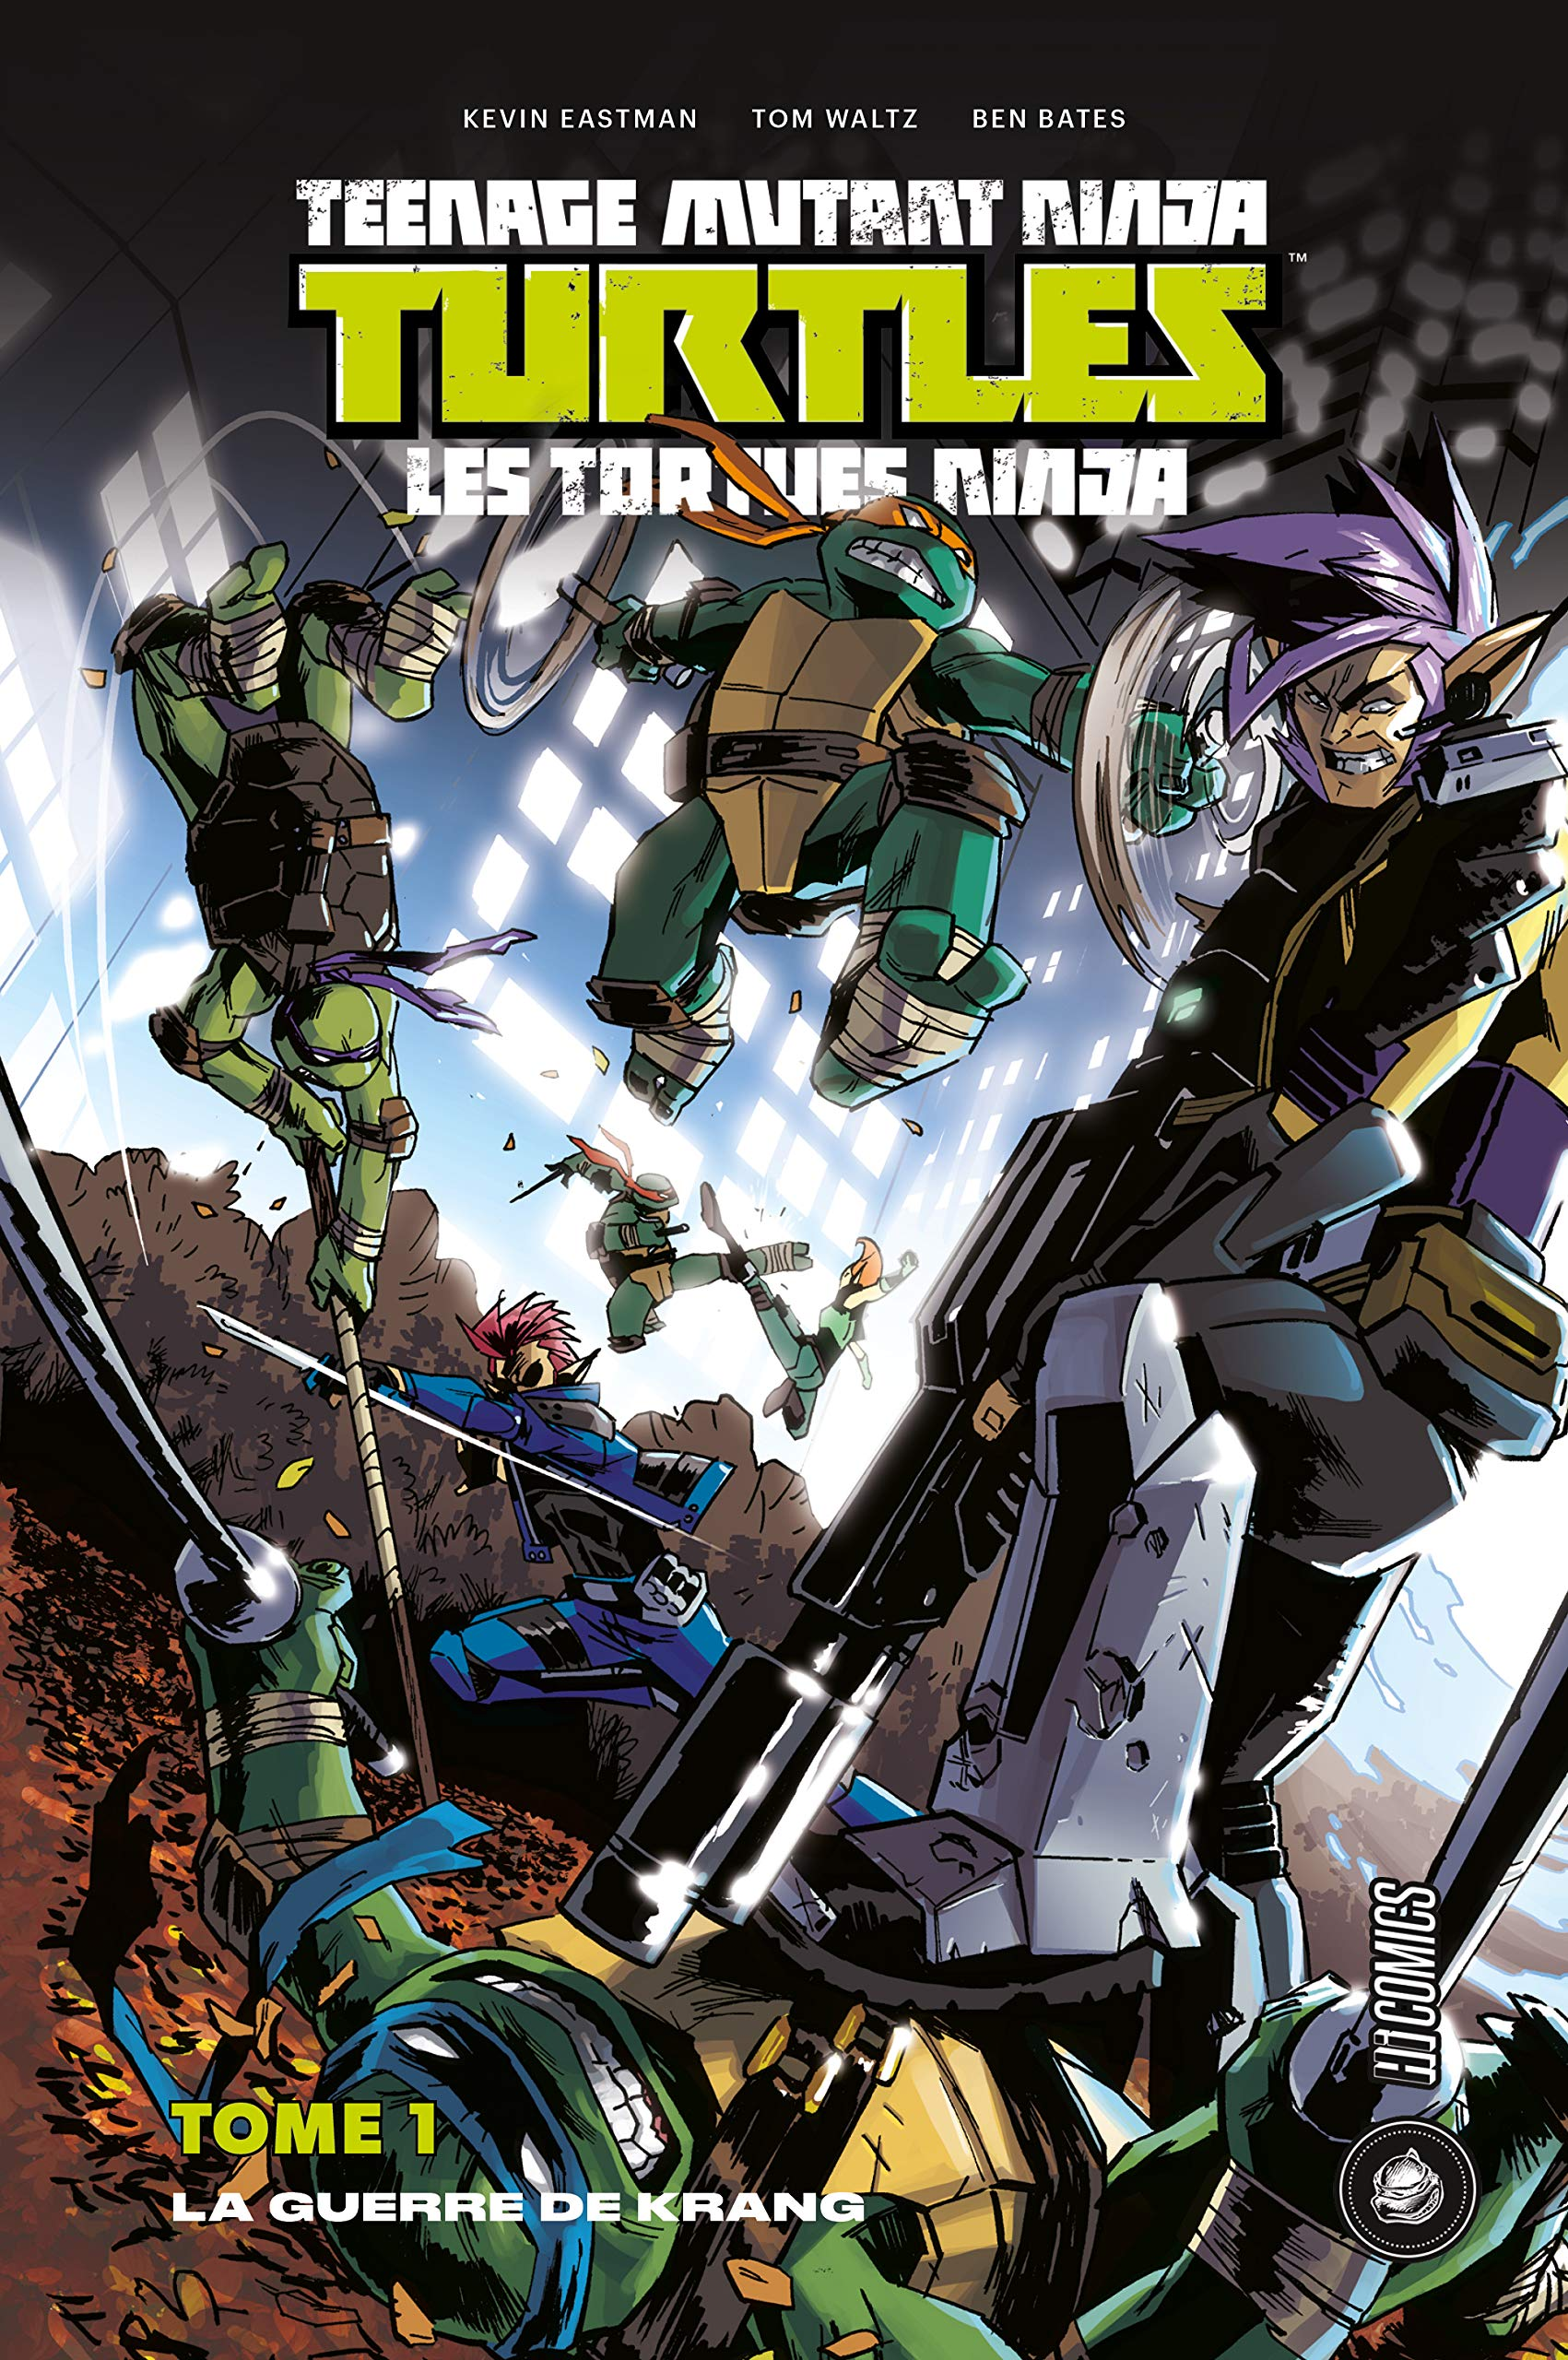 Teenage Mutant Ninja Turtles - Les tortues ninja, Tome 1 ...